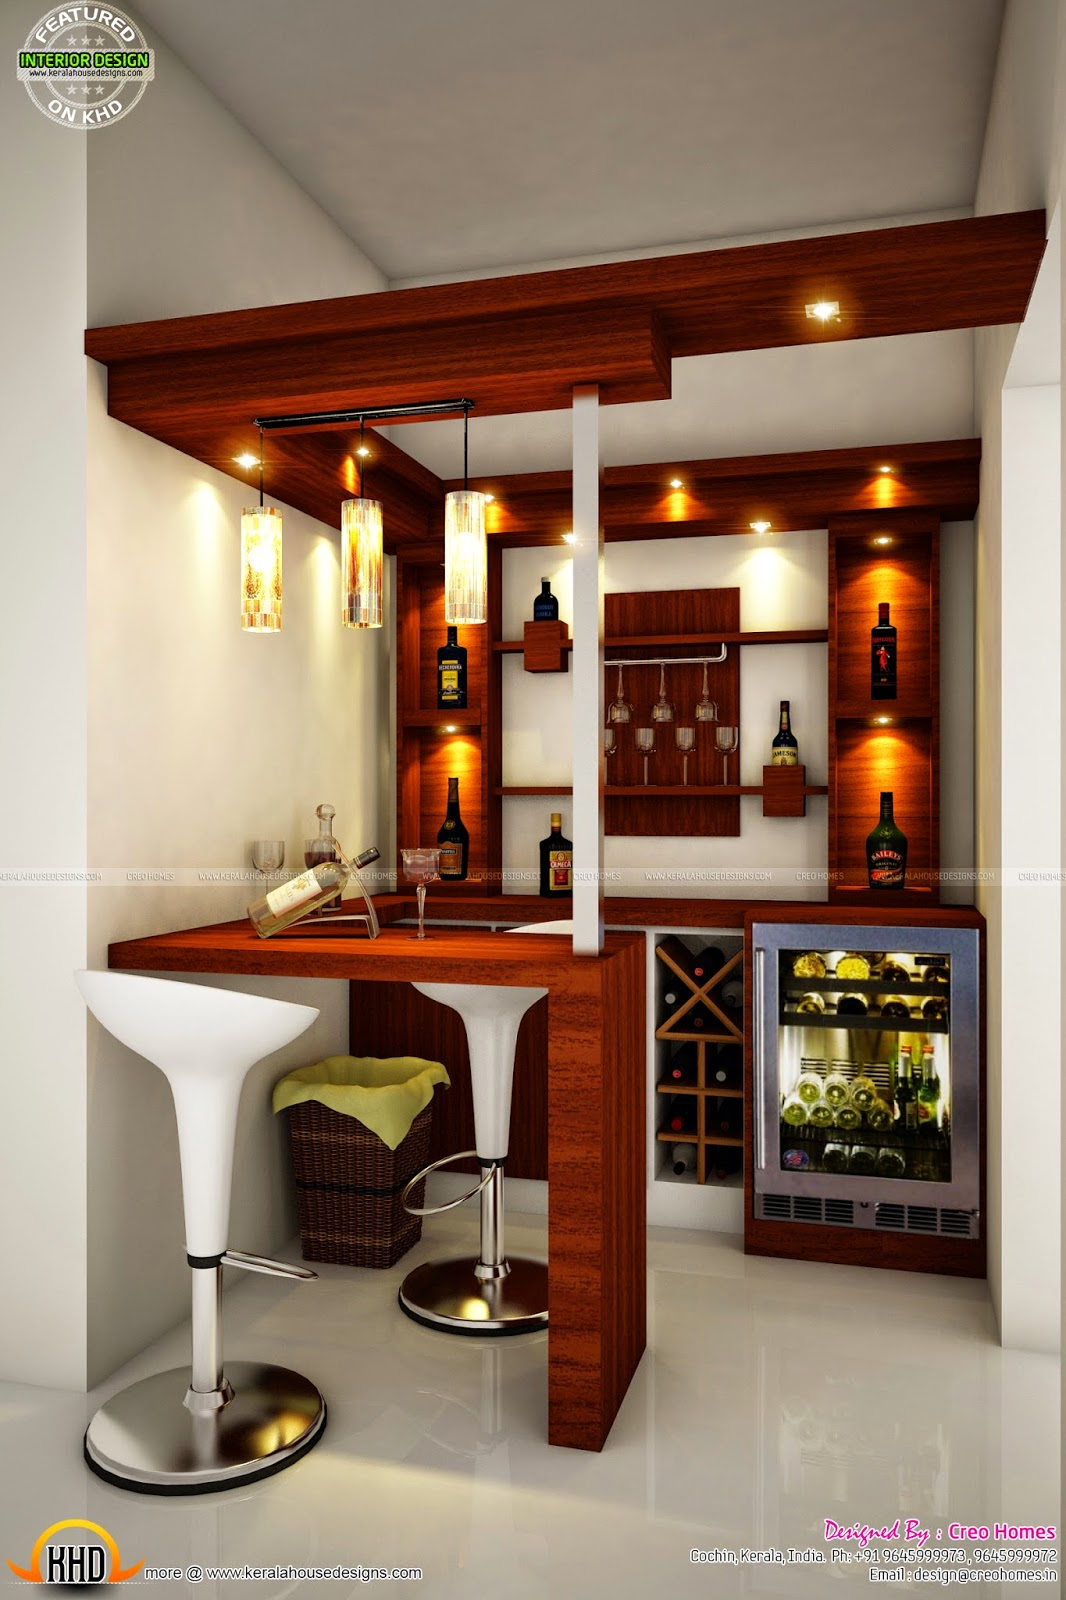 Total home interior solutions by creo homes kerala home - Mini bar in house ...